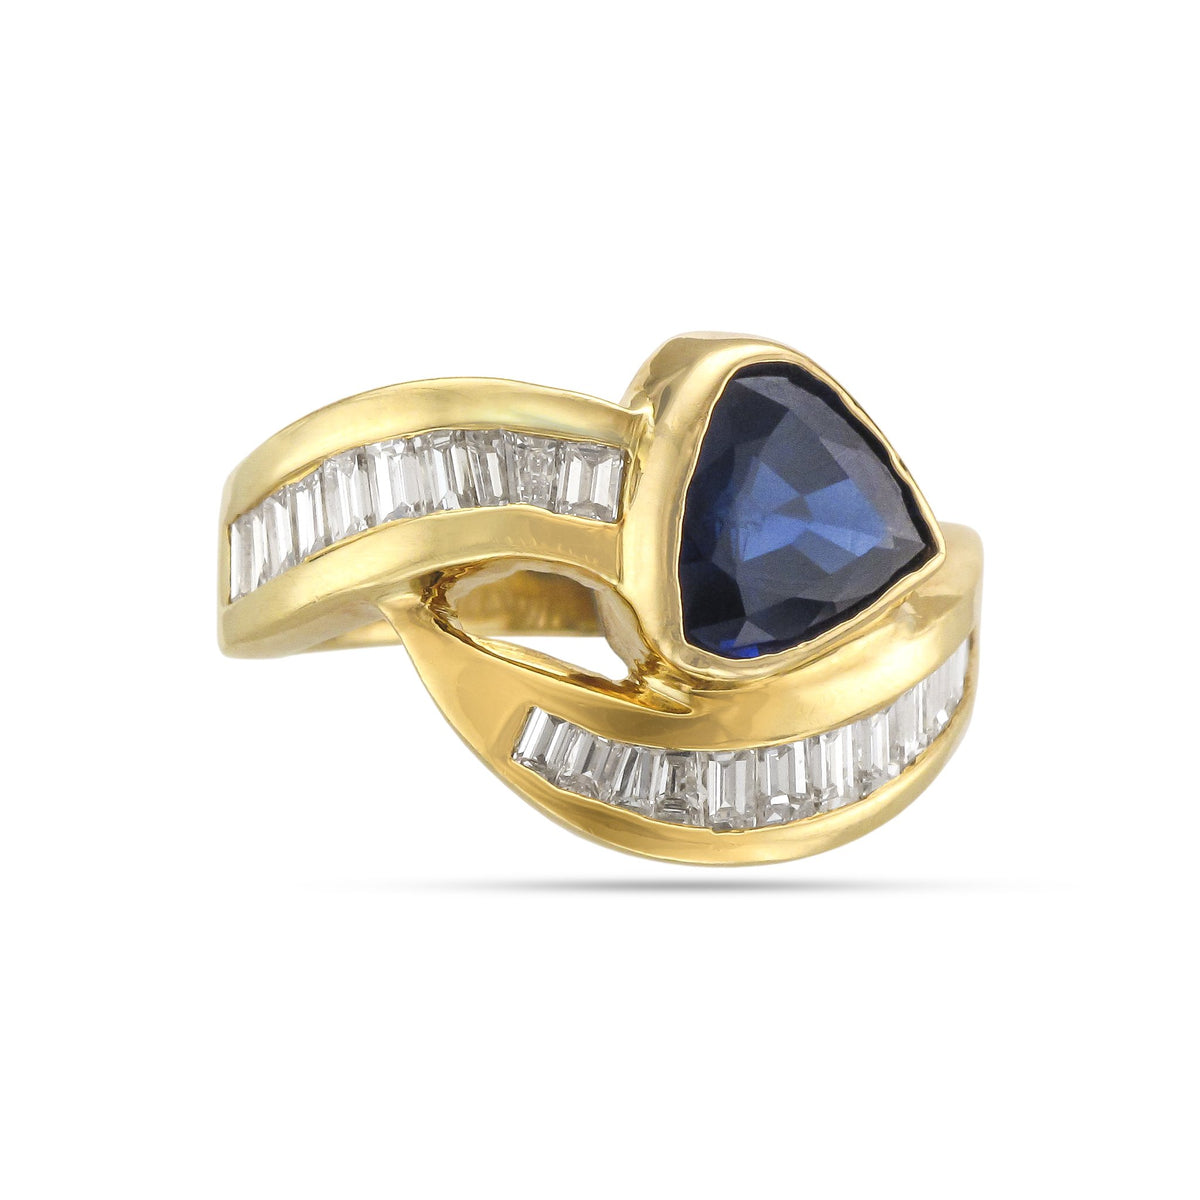 Vintage 18ct Yellow Gold Sapphire and Diamond Crossover Ring